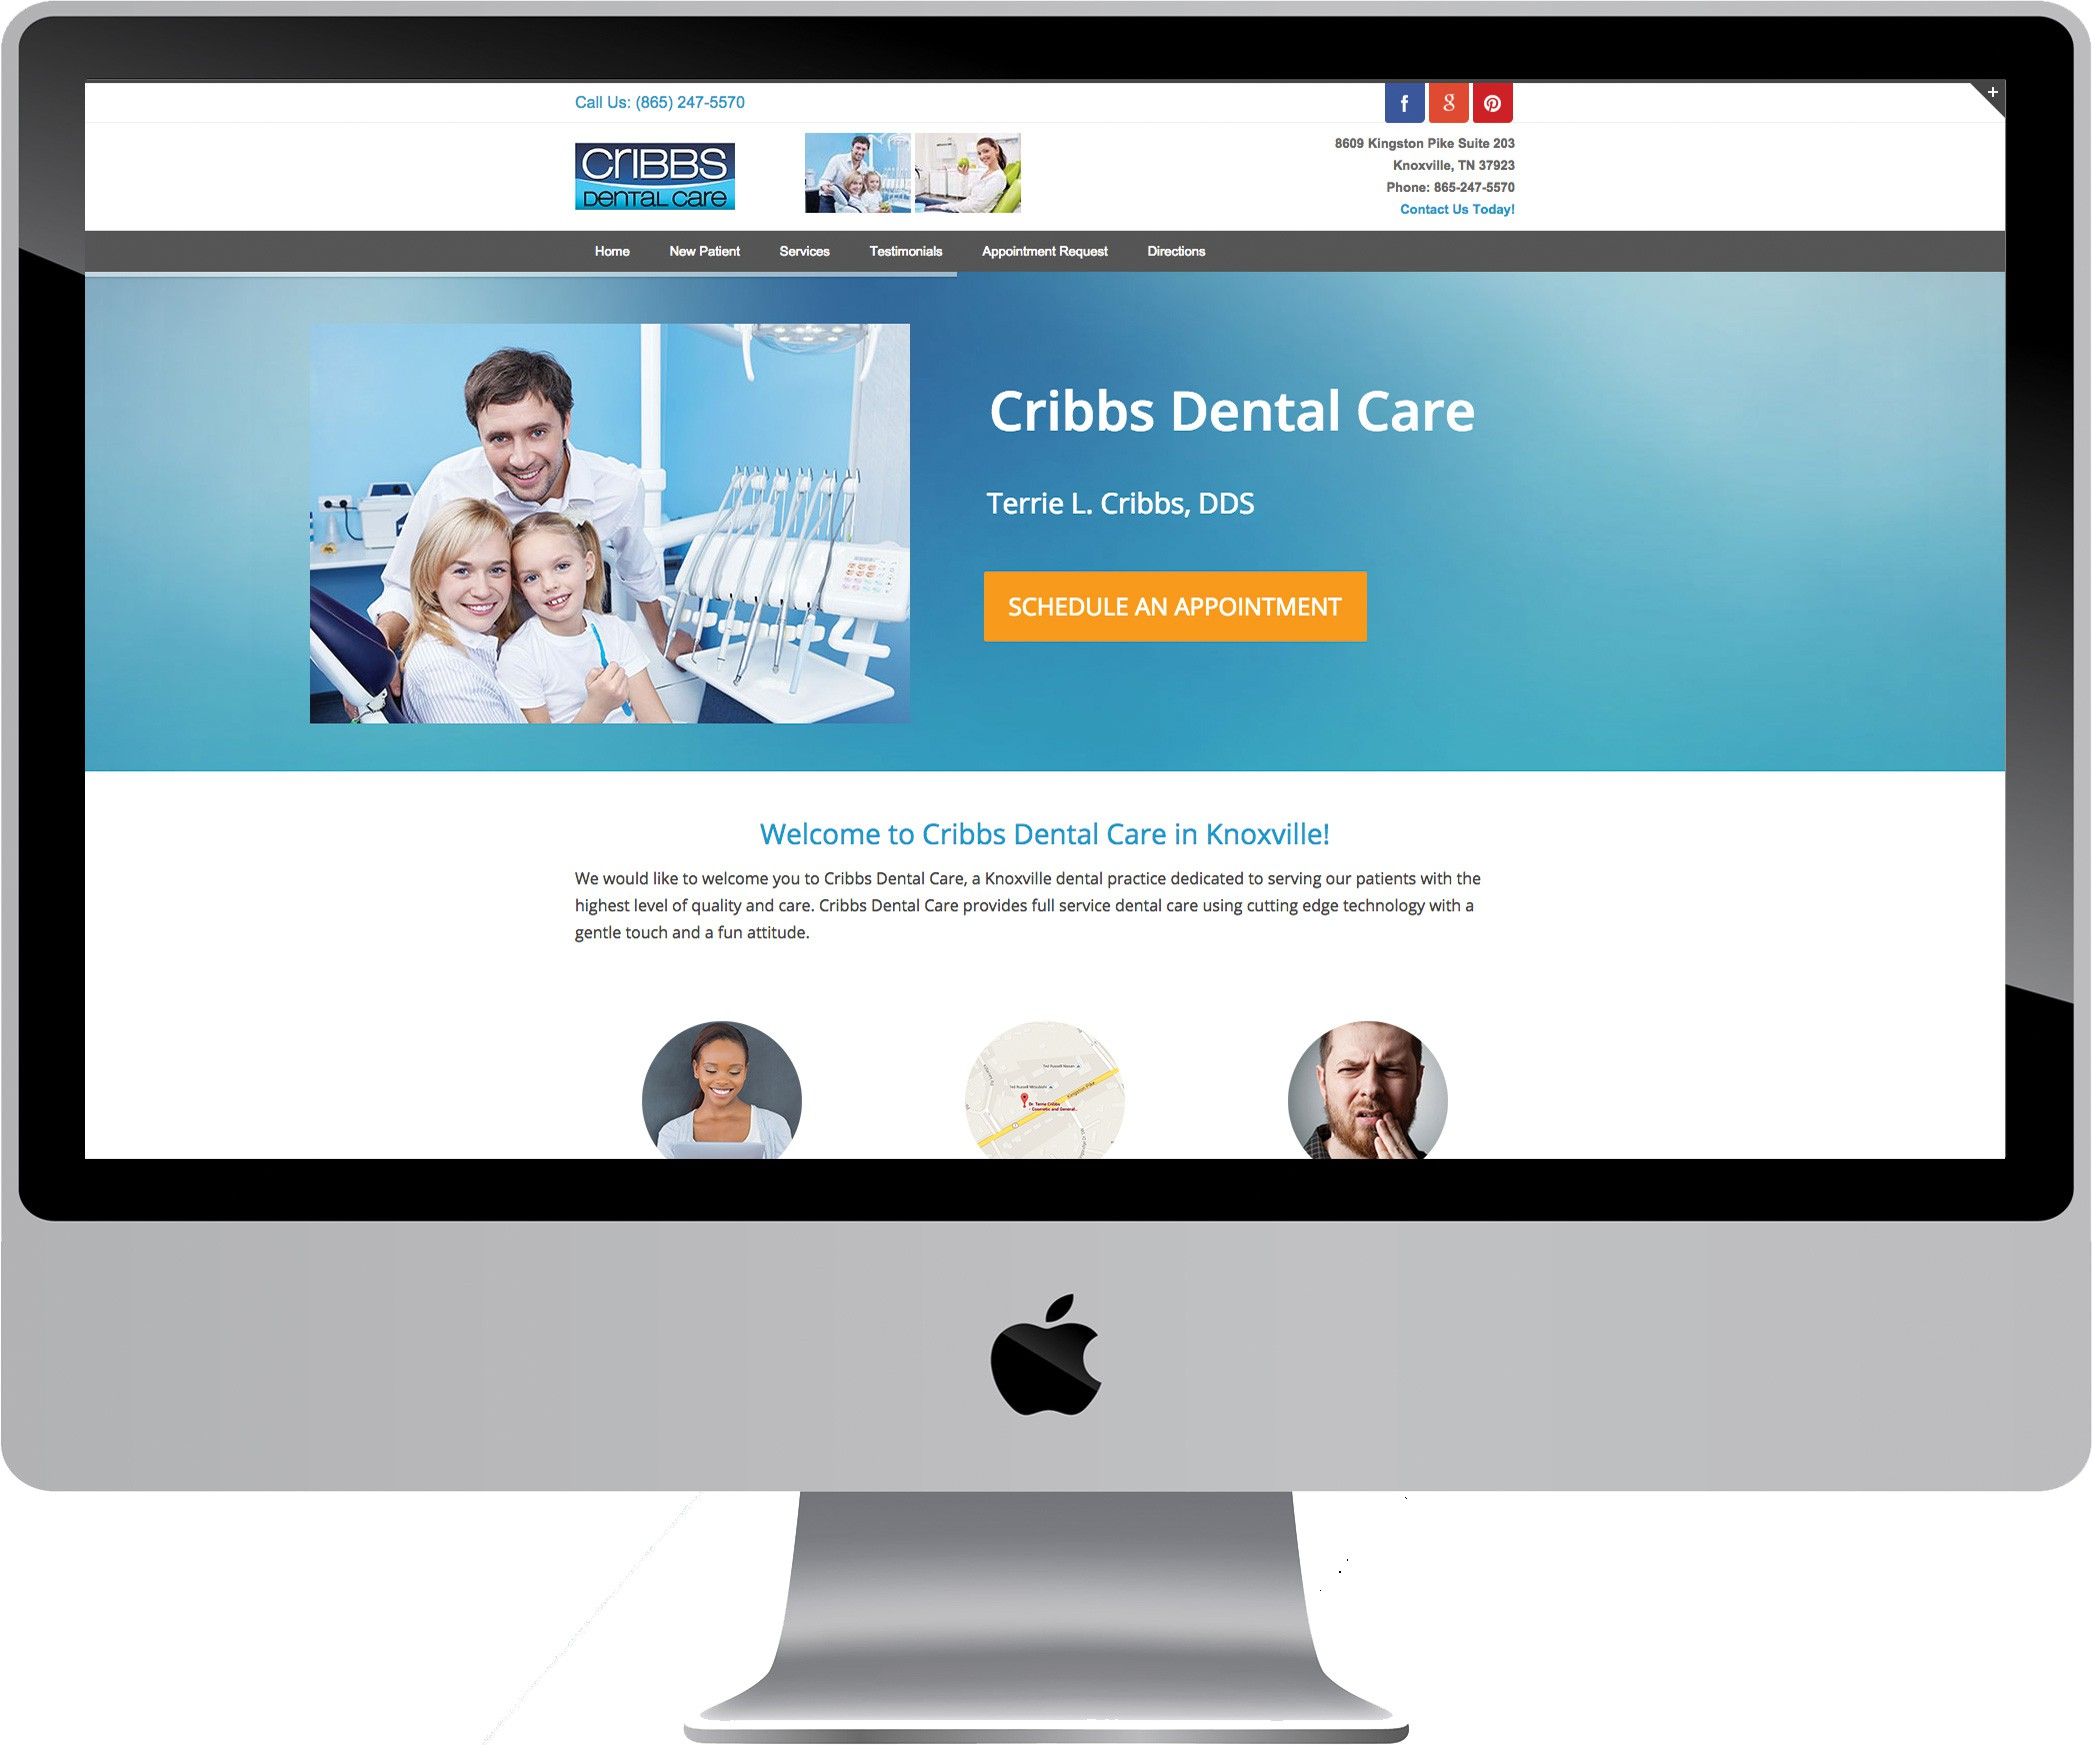 Cribbs Dental Care on a Desktop